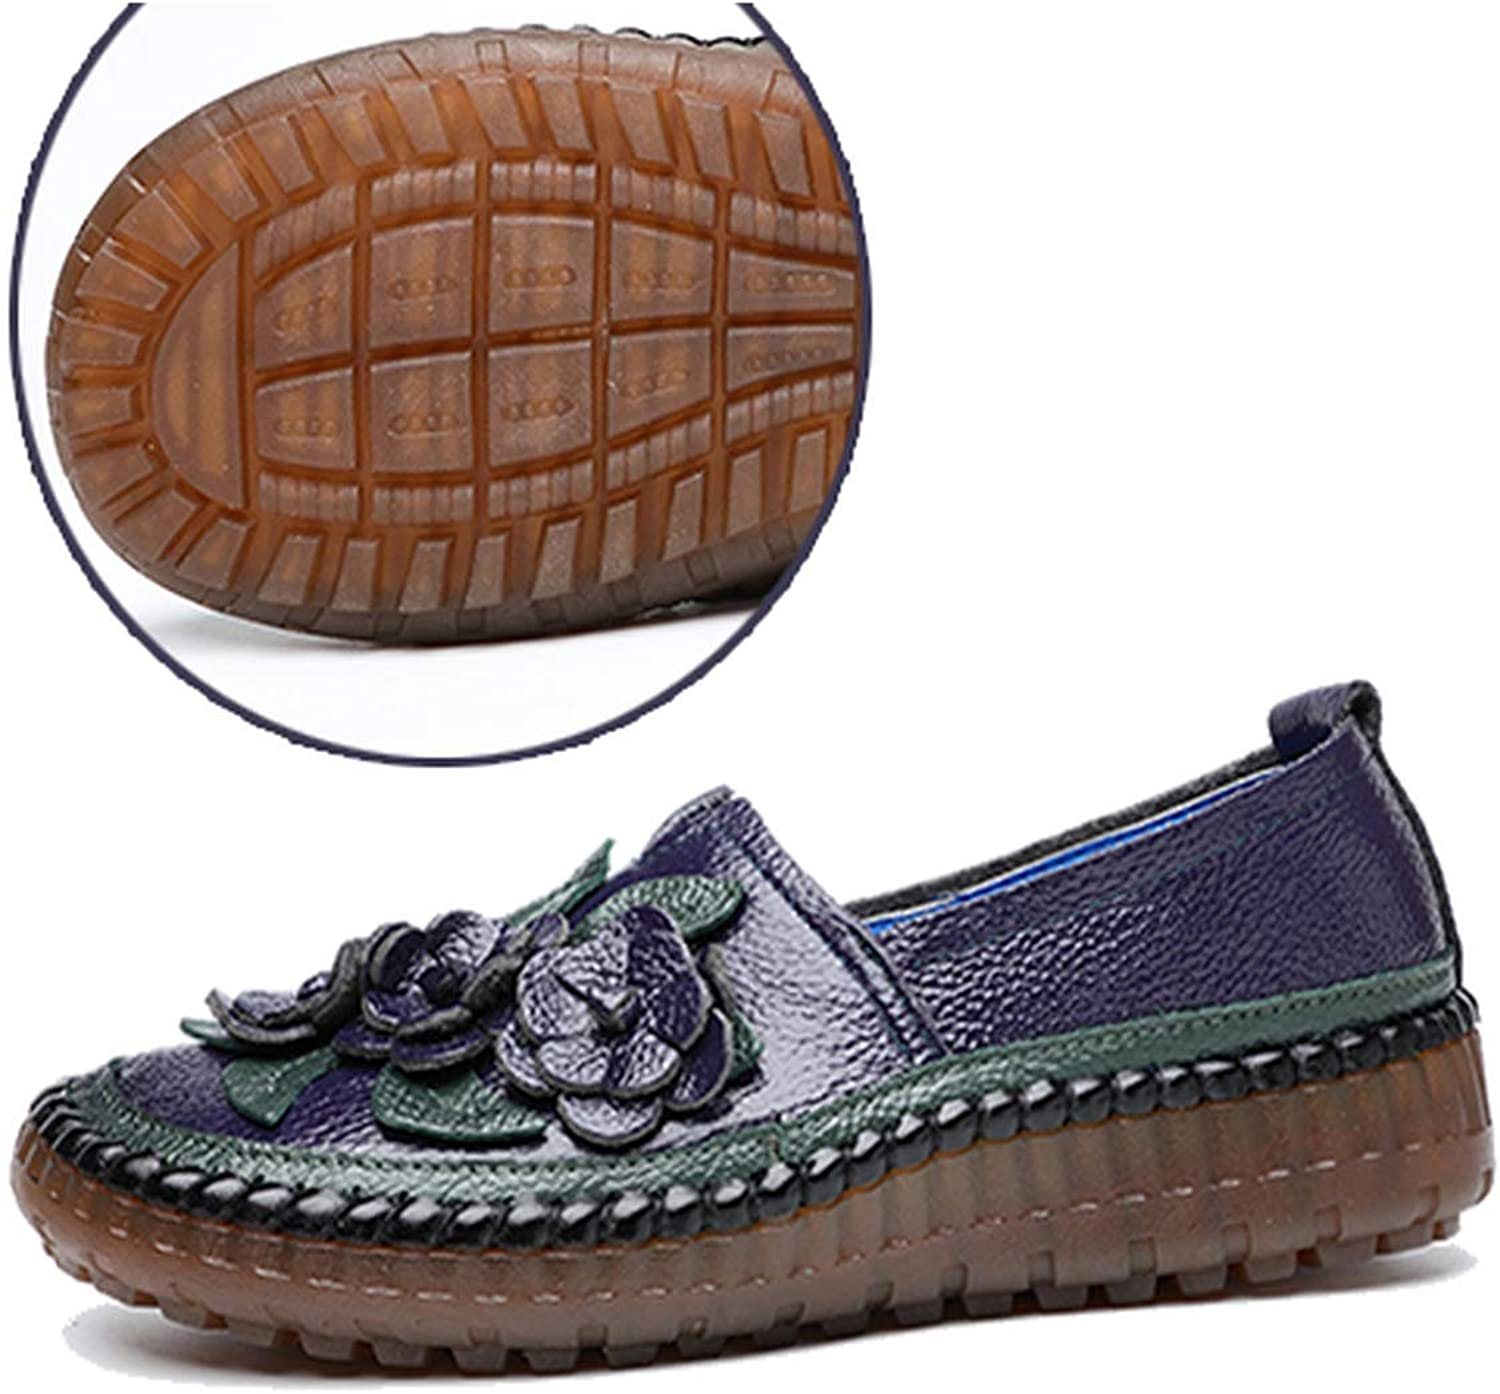 PREtty-2 Retro Style Genuine Leather Loafers shoes Women Spring Round Toe Appliques Soft Slip-On Flat shoes